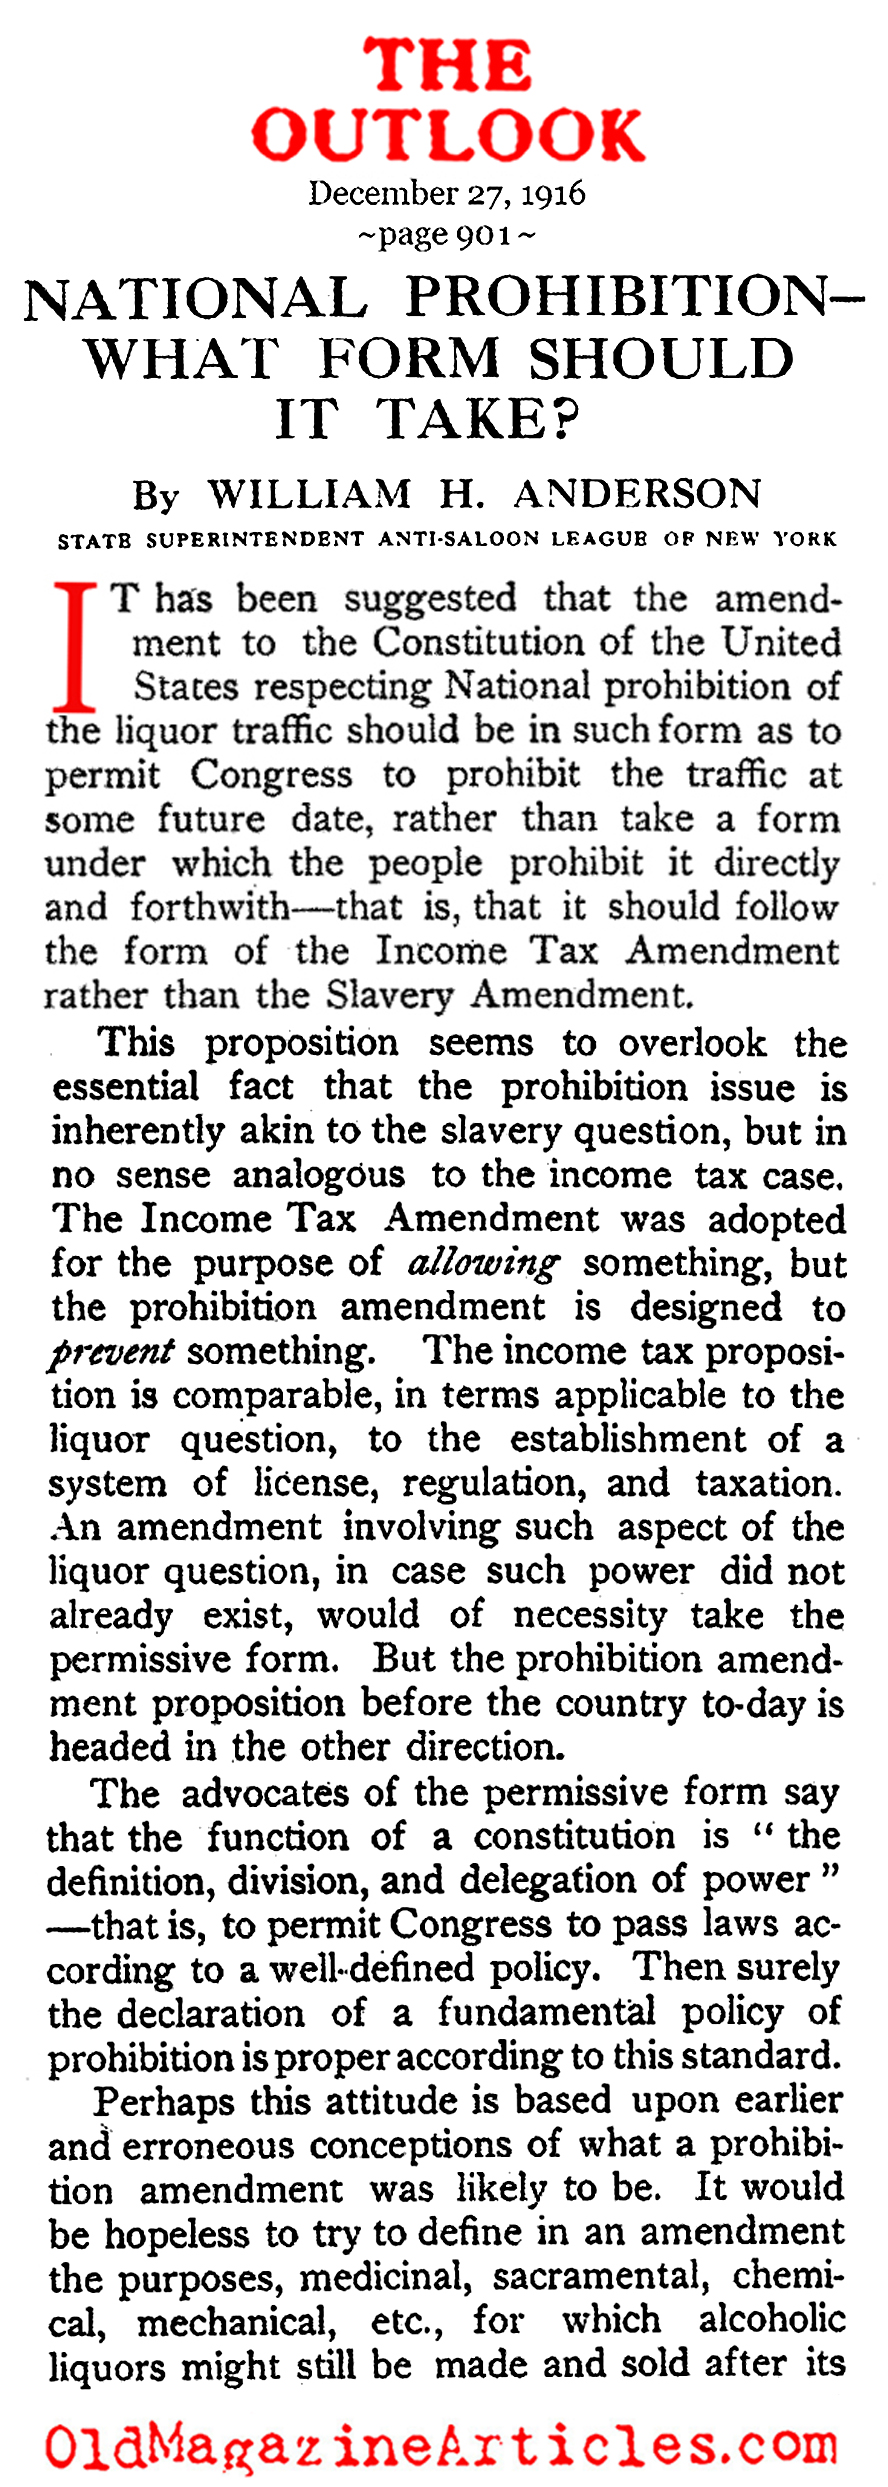 A Look at at  What  the  Prohibition  Amendment  Might Look Like  (The Outlook, 1916)